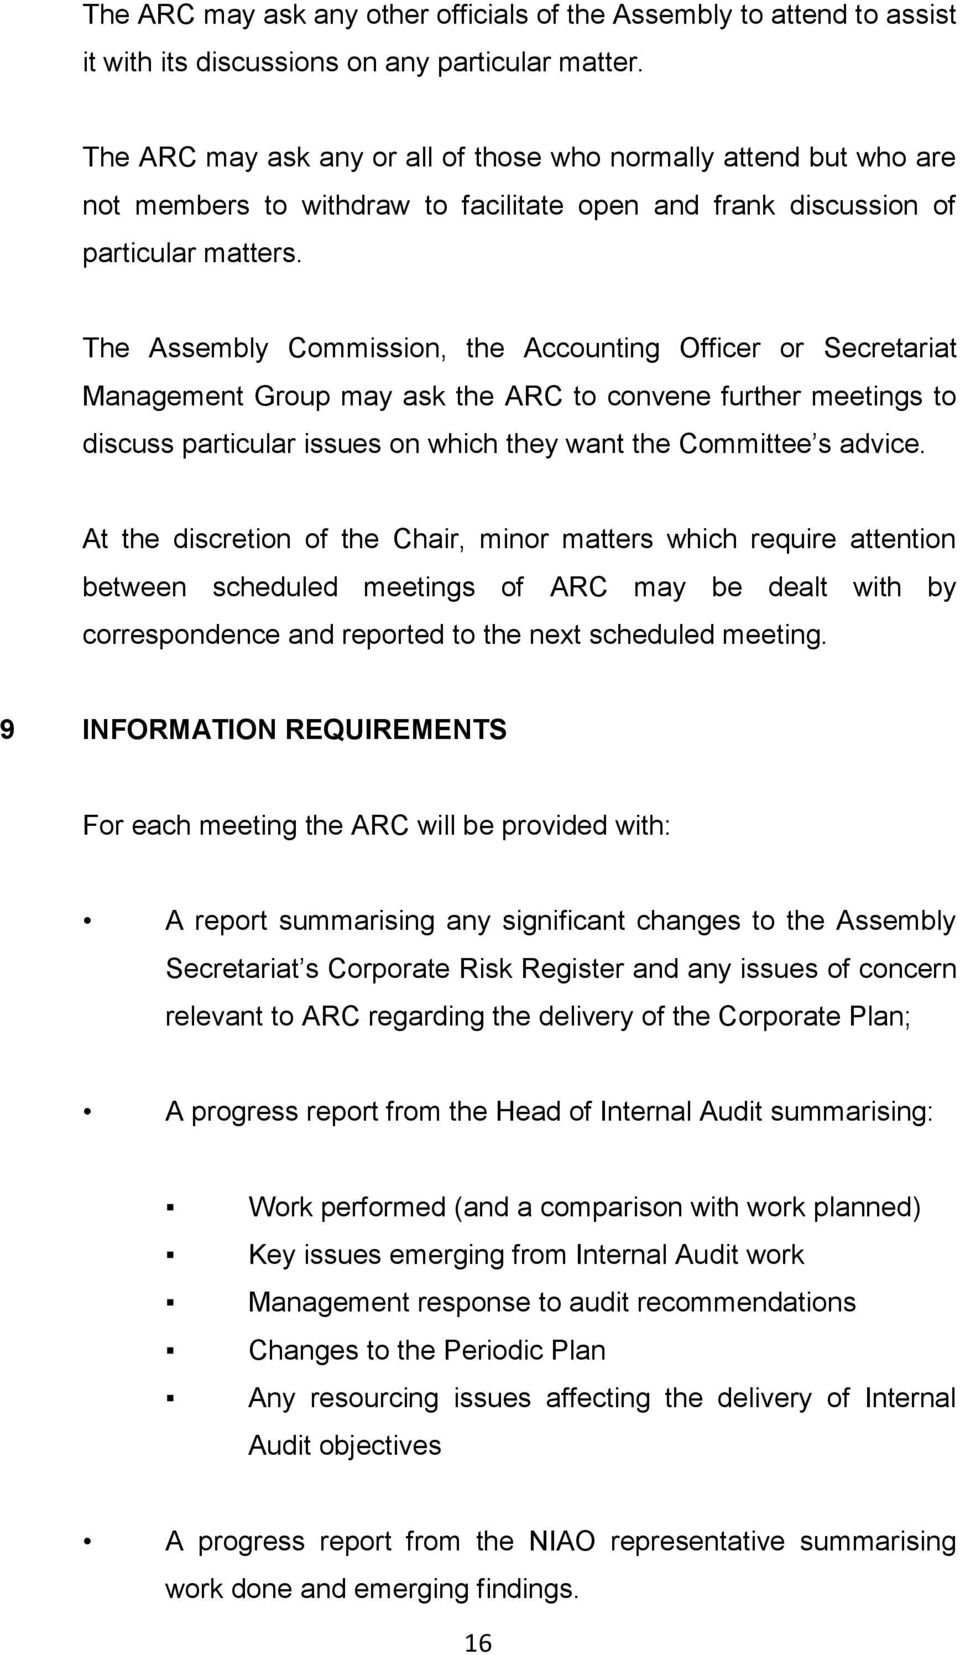 The Assembly Commission, the Accounting Officer or Secretariat Management Group may ask the ARC to convene further meetings to discuss particular issues on which they want the Committee s advice.